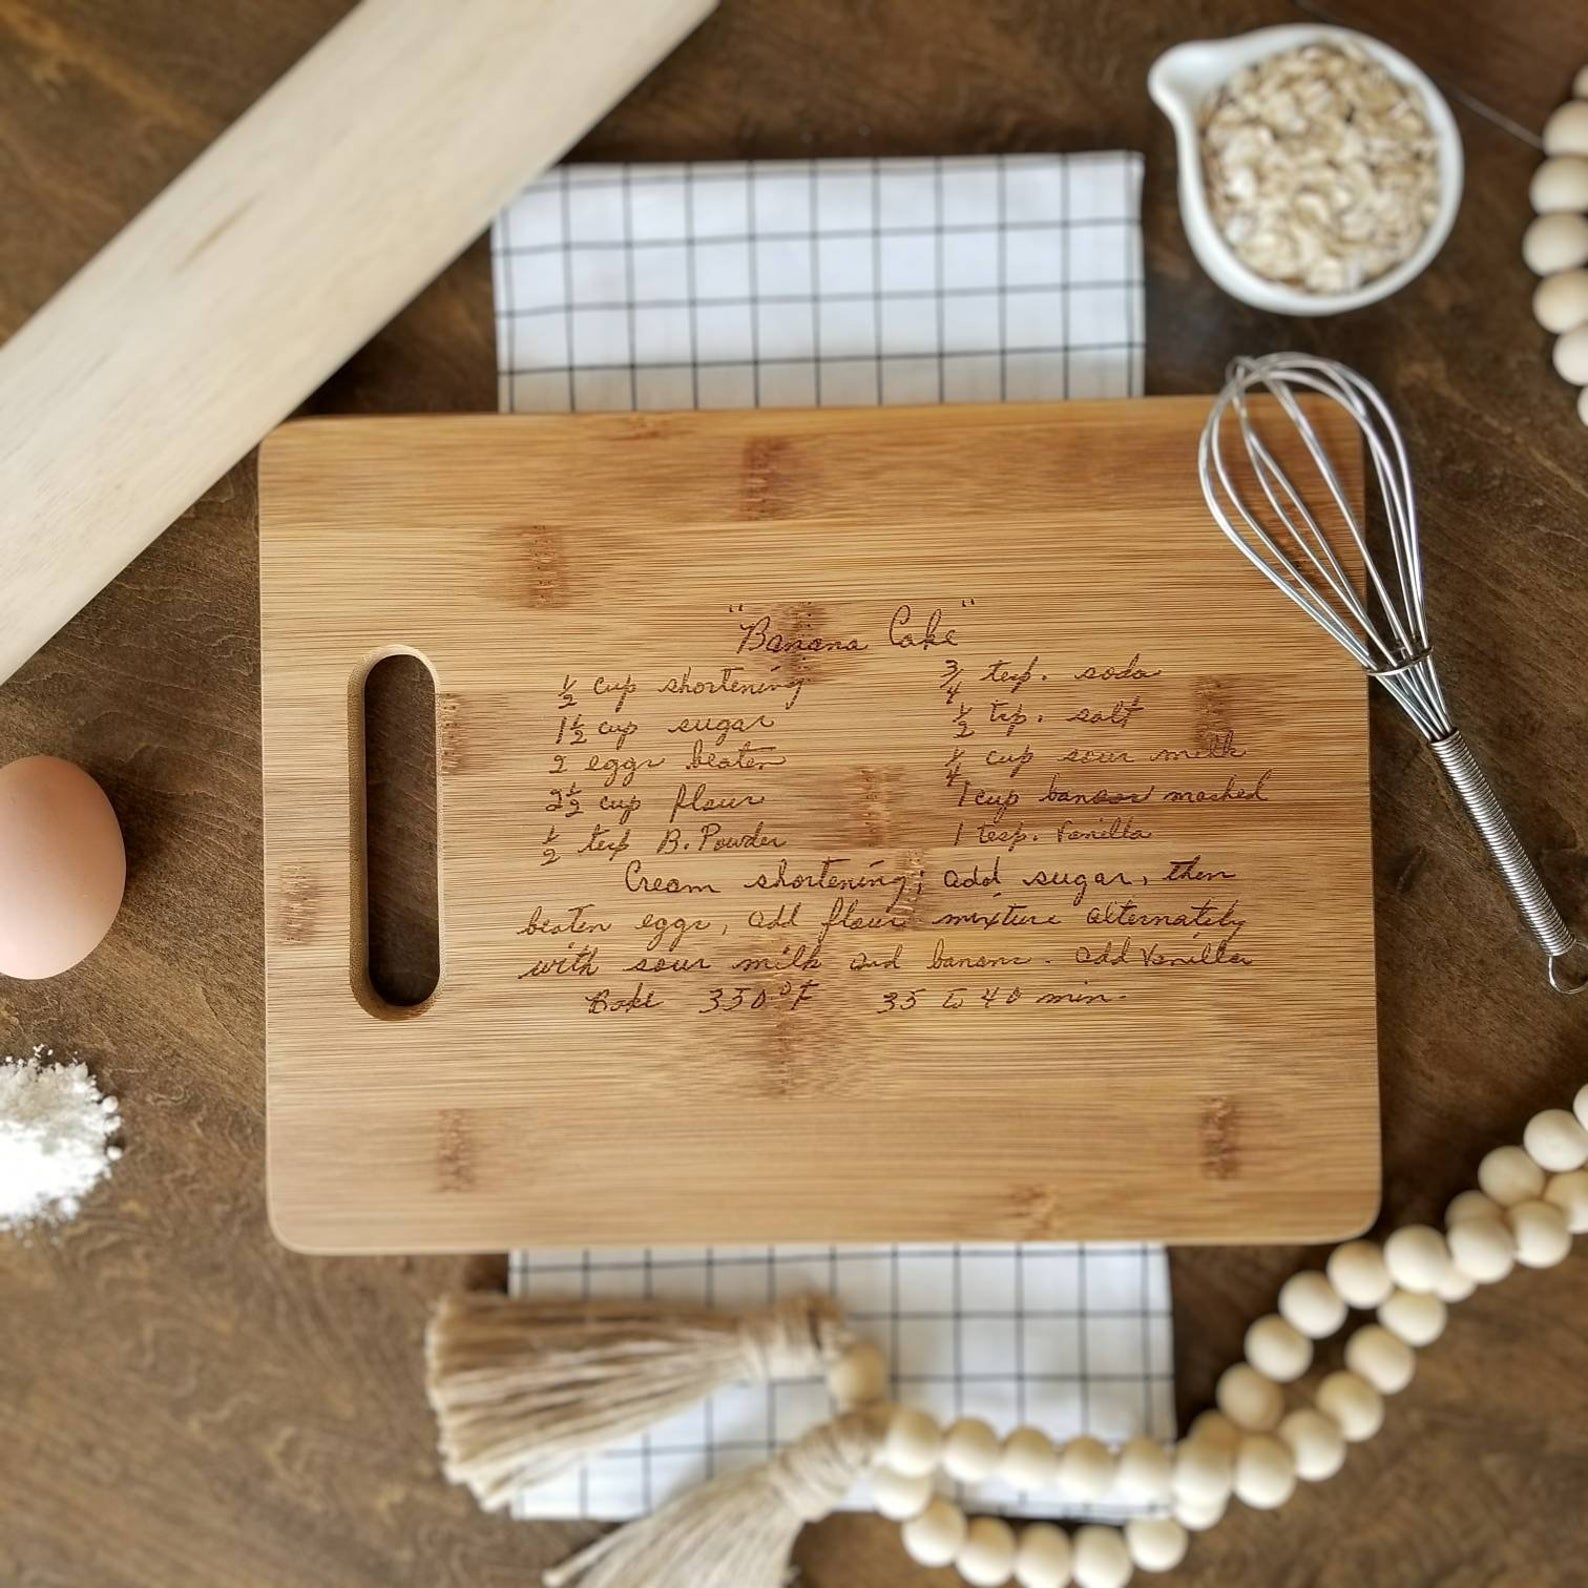 10 best gifts for grandparents from small businesses: A personalized cutting board with a family recipe